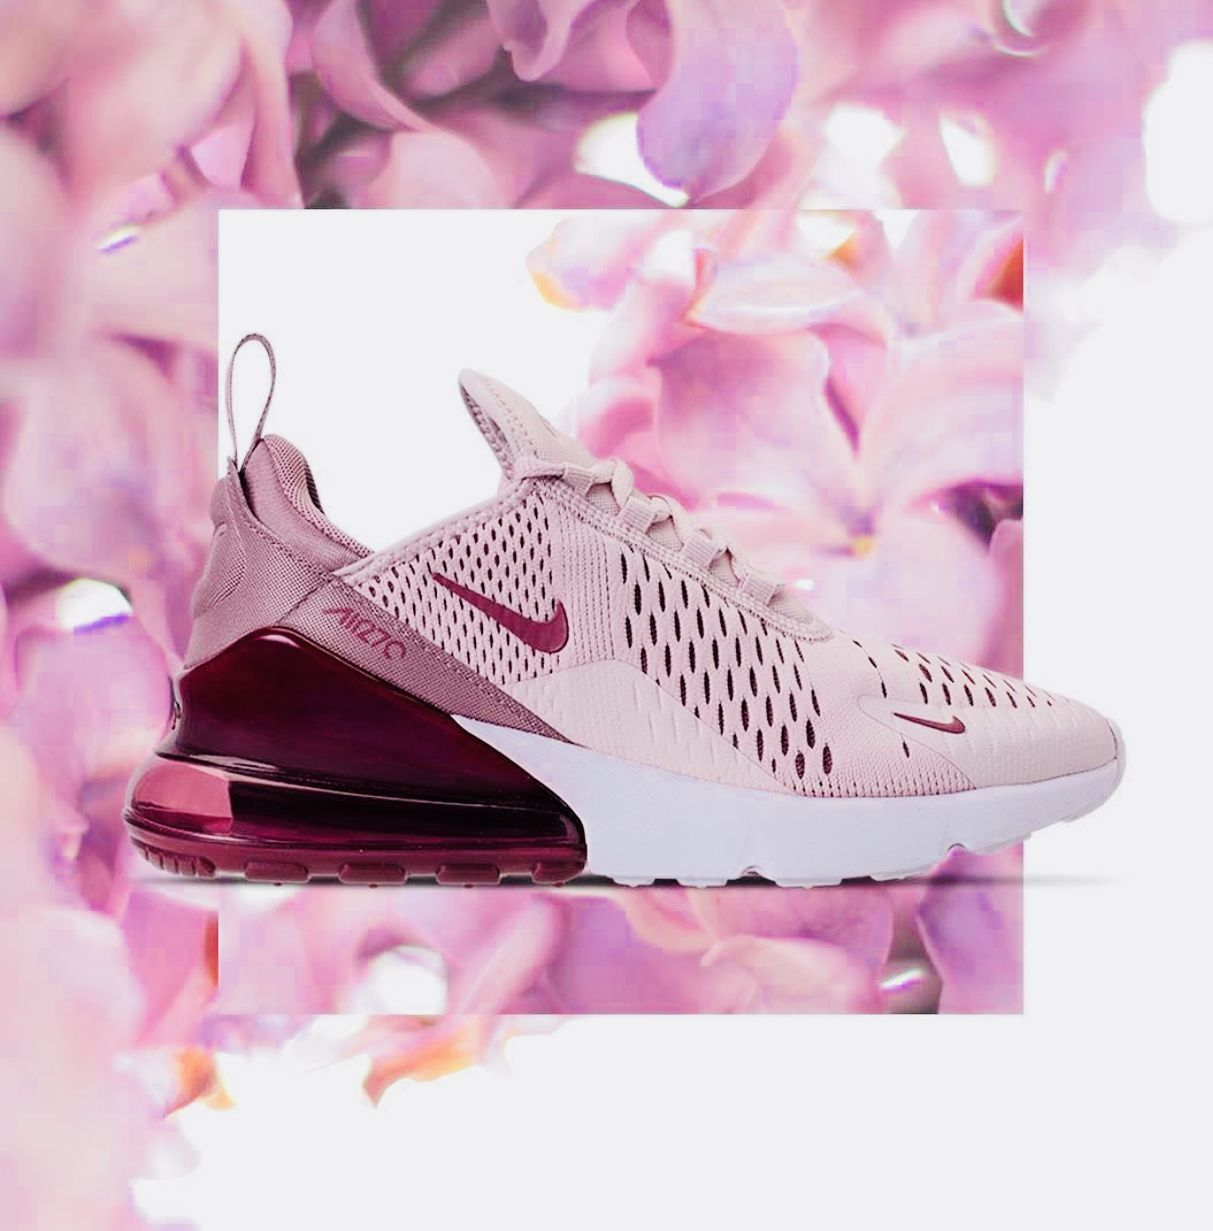 236fa1ece197 Women s Nike Air Max 270 - Barely Rose Vintage Wine Elemental Rose White